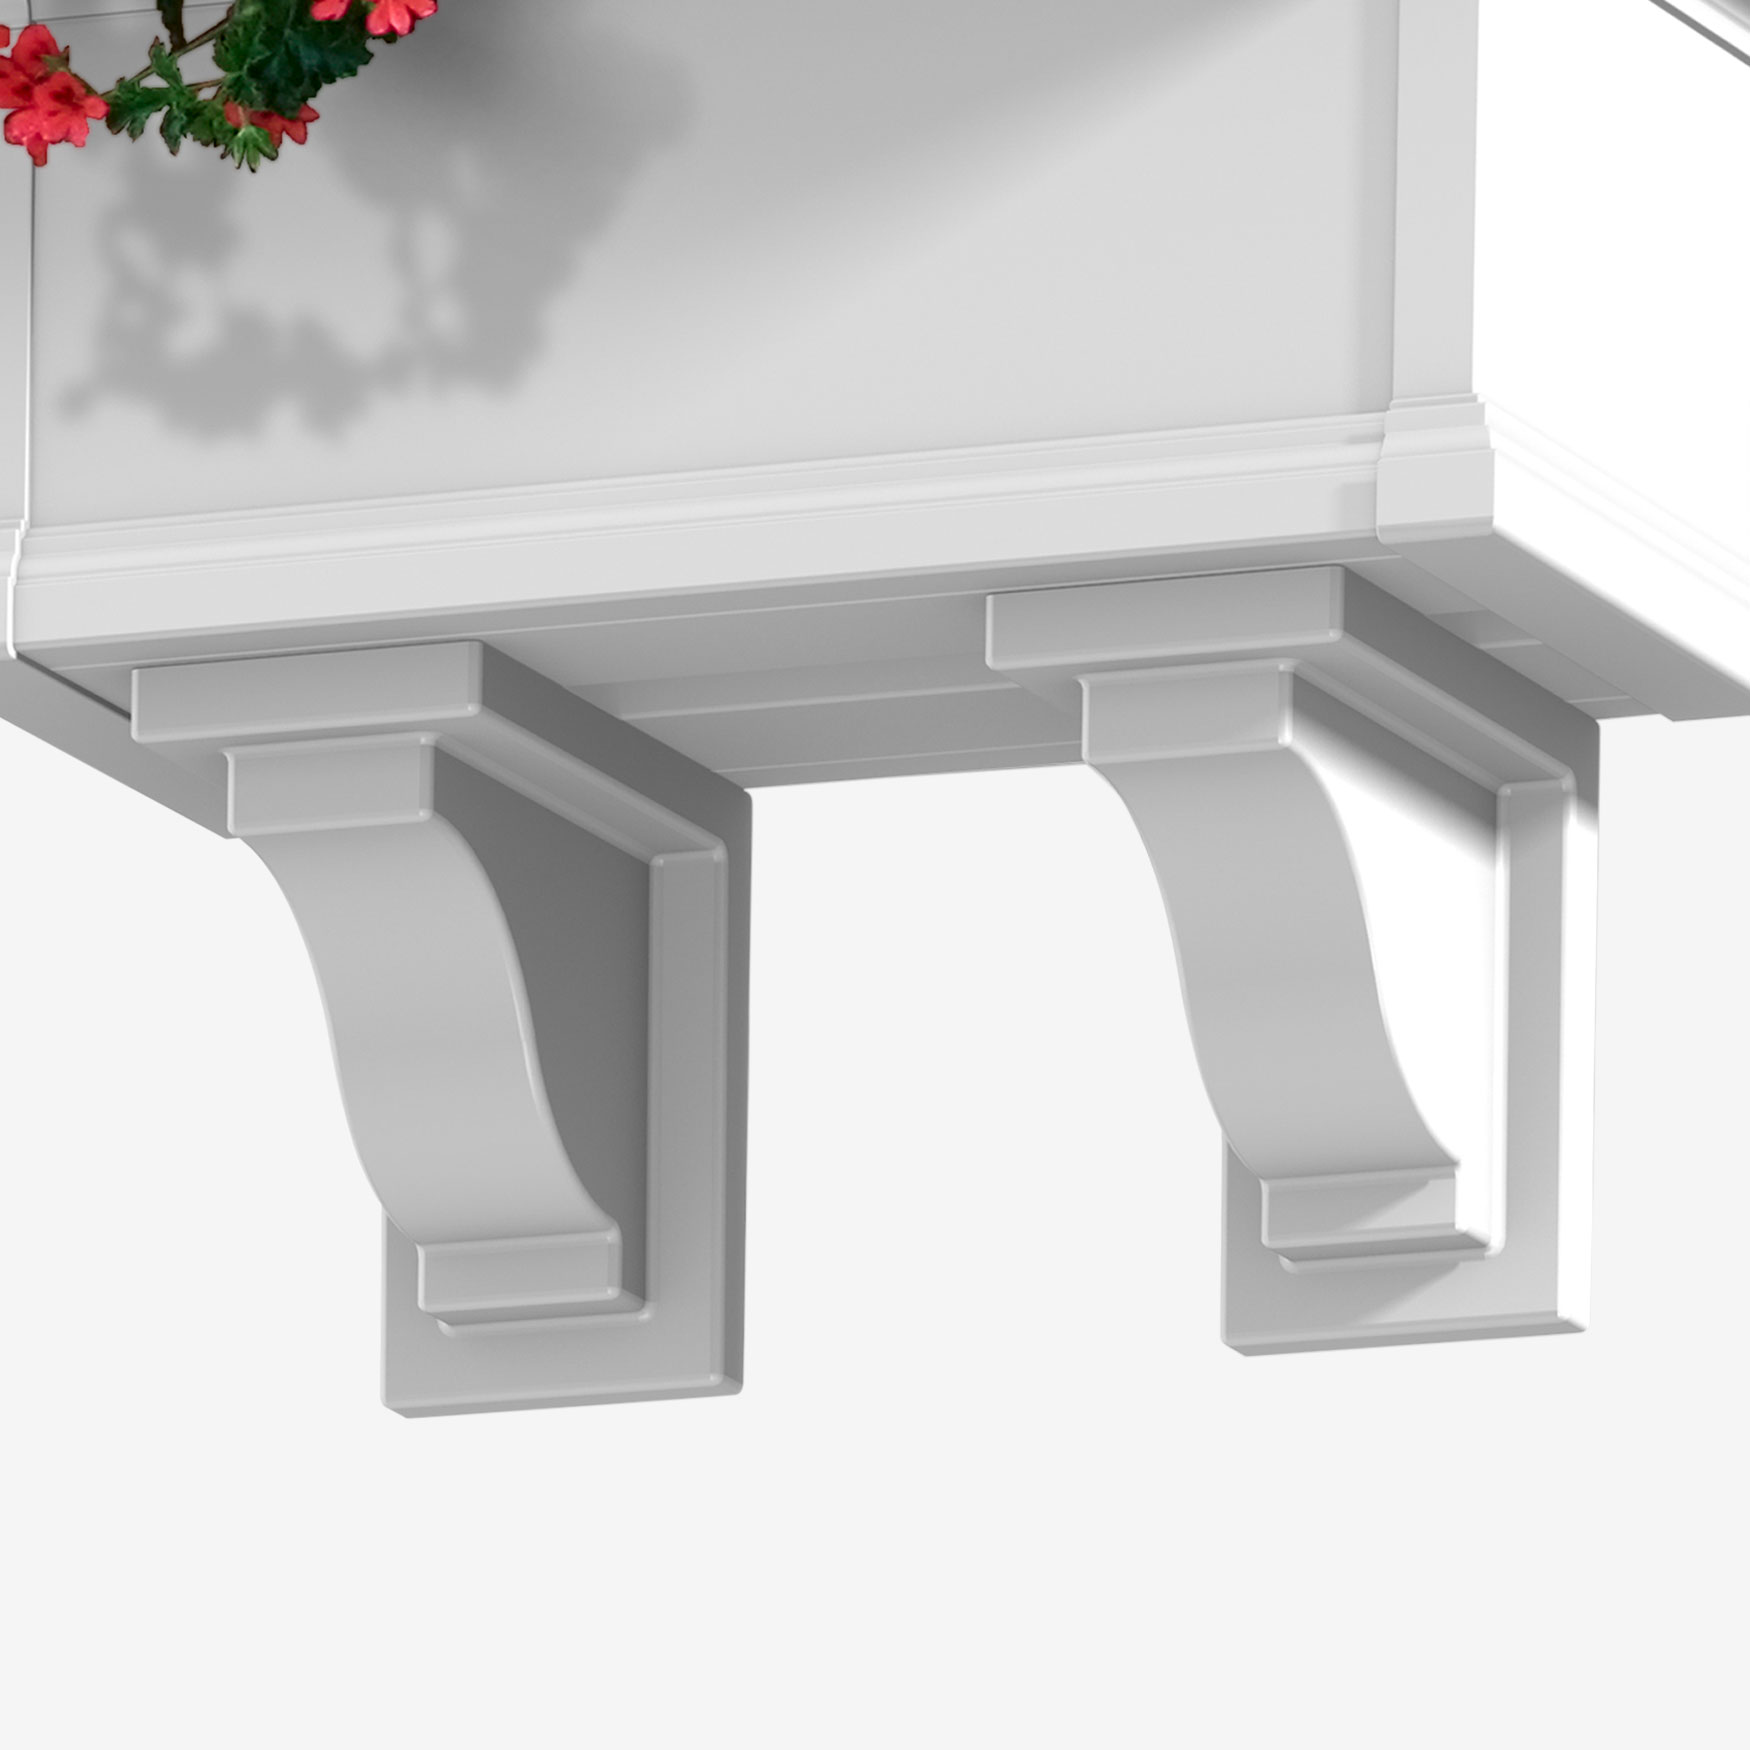 Yorkshire Decorative Brackets 2-Pack, WHITE